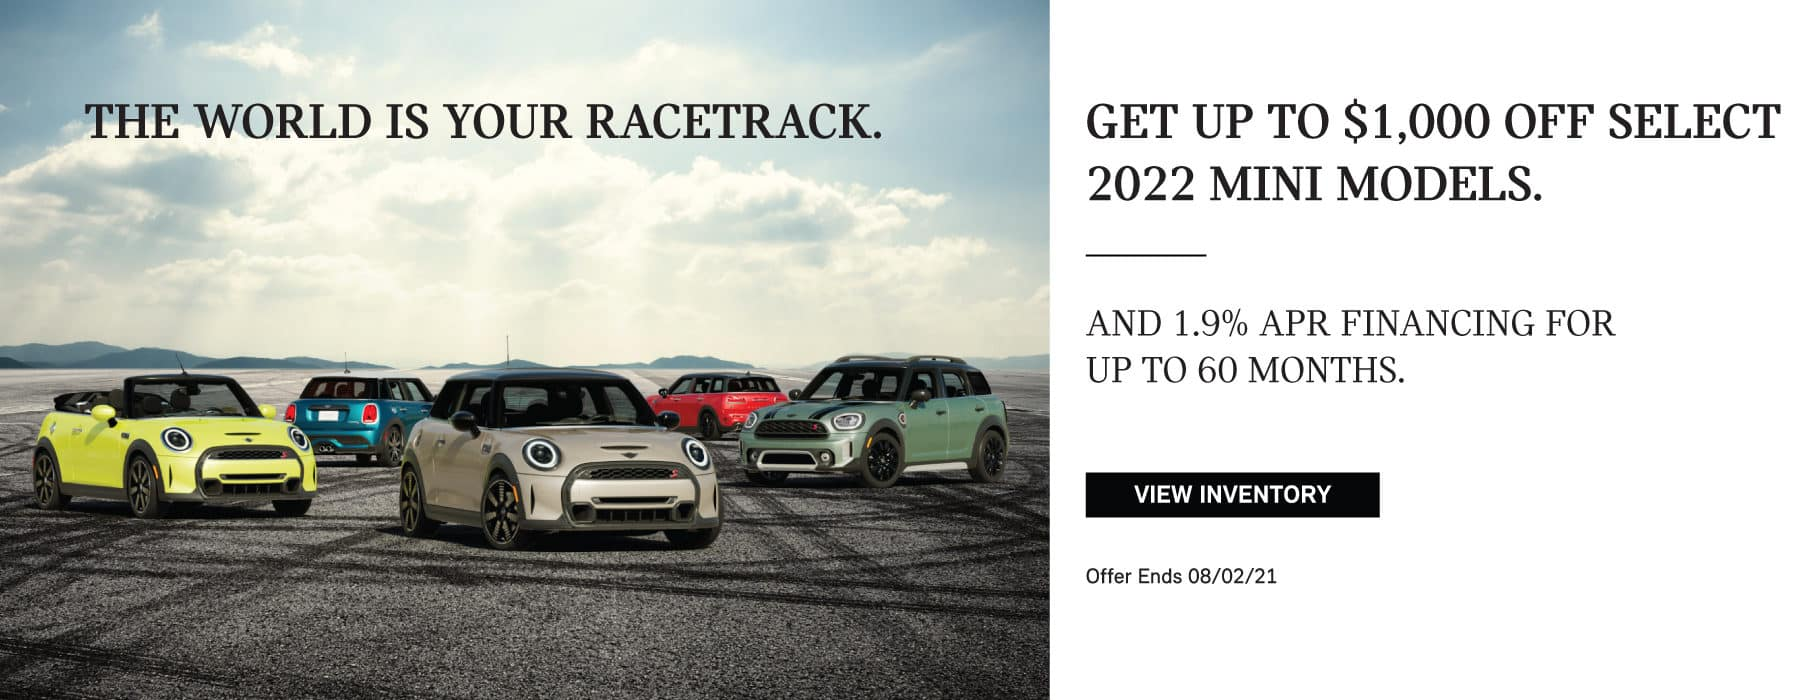 Get up to $1000 off select MINI models. And 1.9% APR financing for up to 60 months.